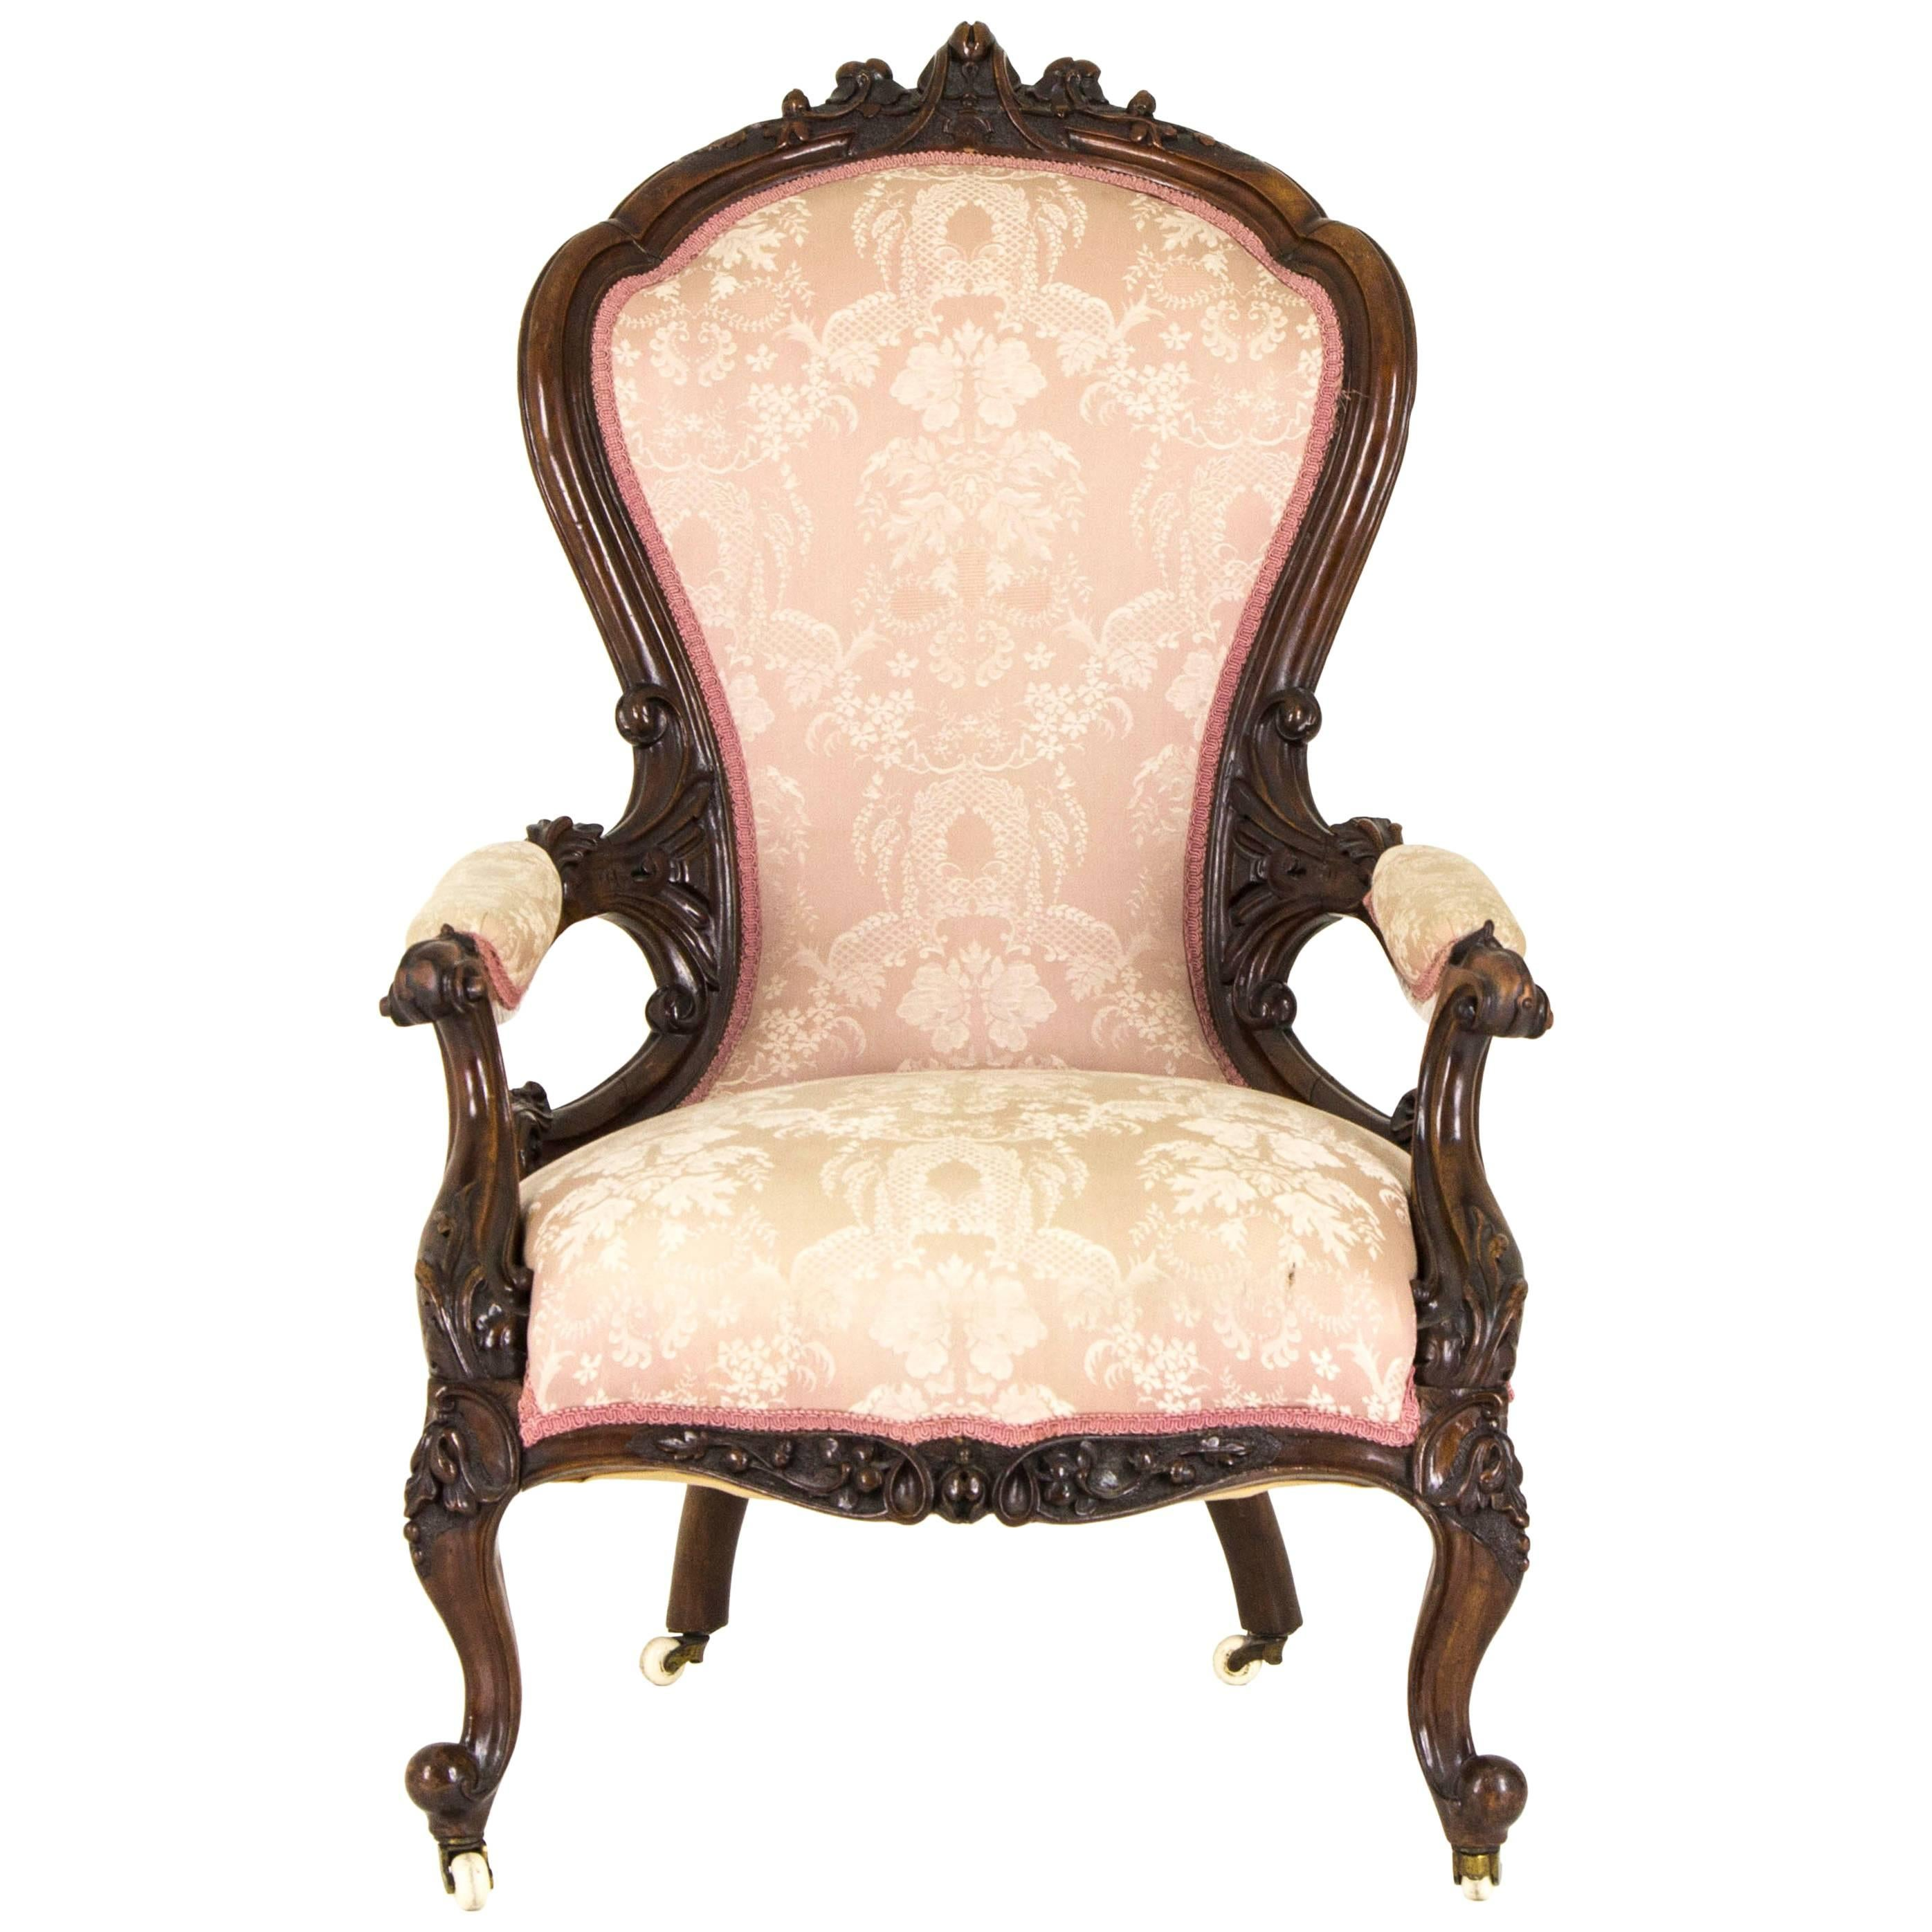 Charming Victorian Parlor Chair Carved Mahogany Chair Scotland, 1870 For Sale